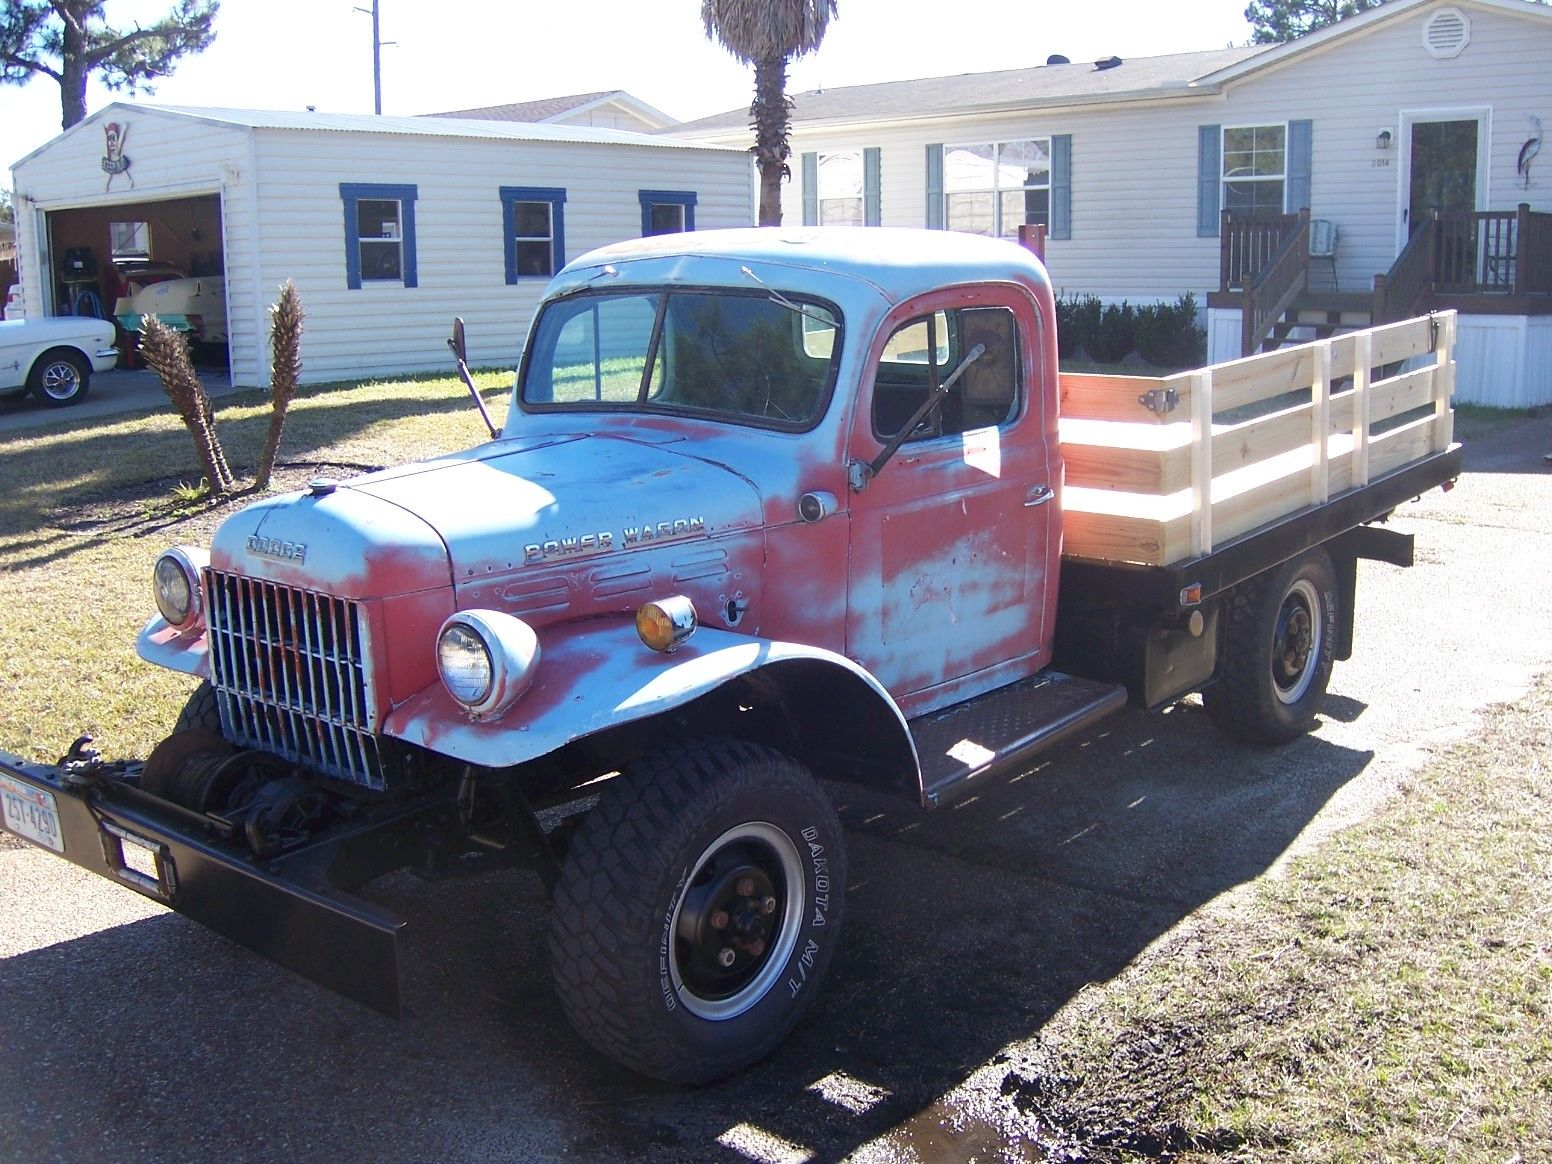 1955 dodge power wagon base c3 pw6 126 3 8l for sale in panama city1955 Dodge Power Wagon Base 38l For Sale #1